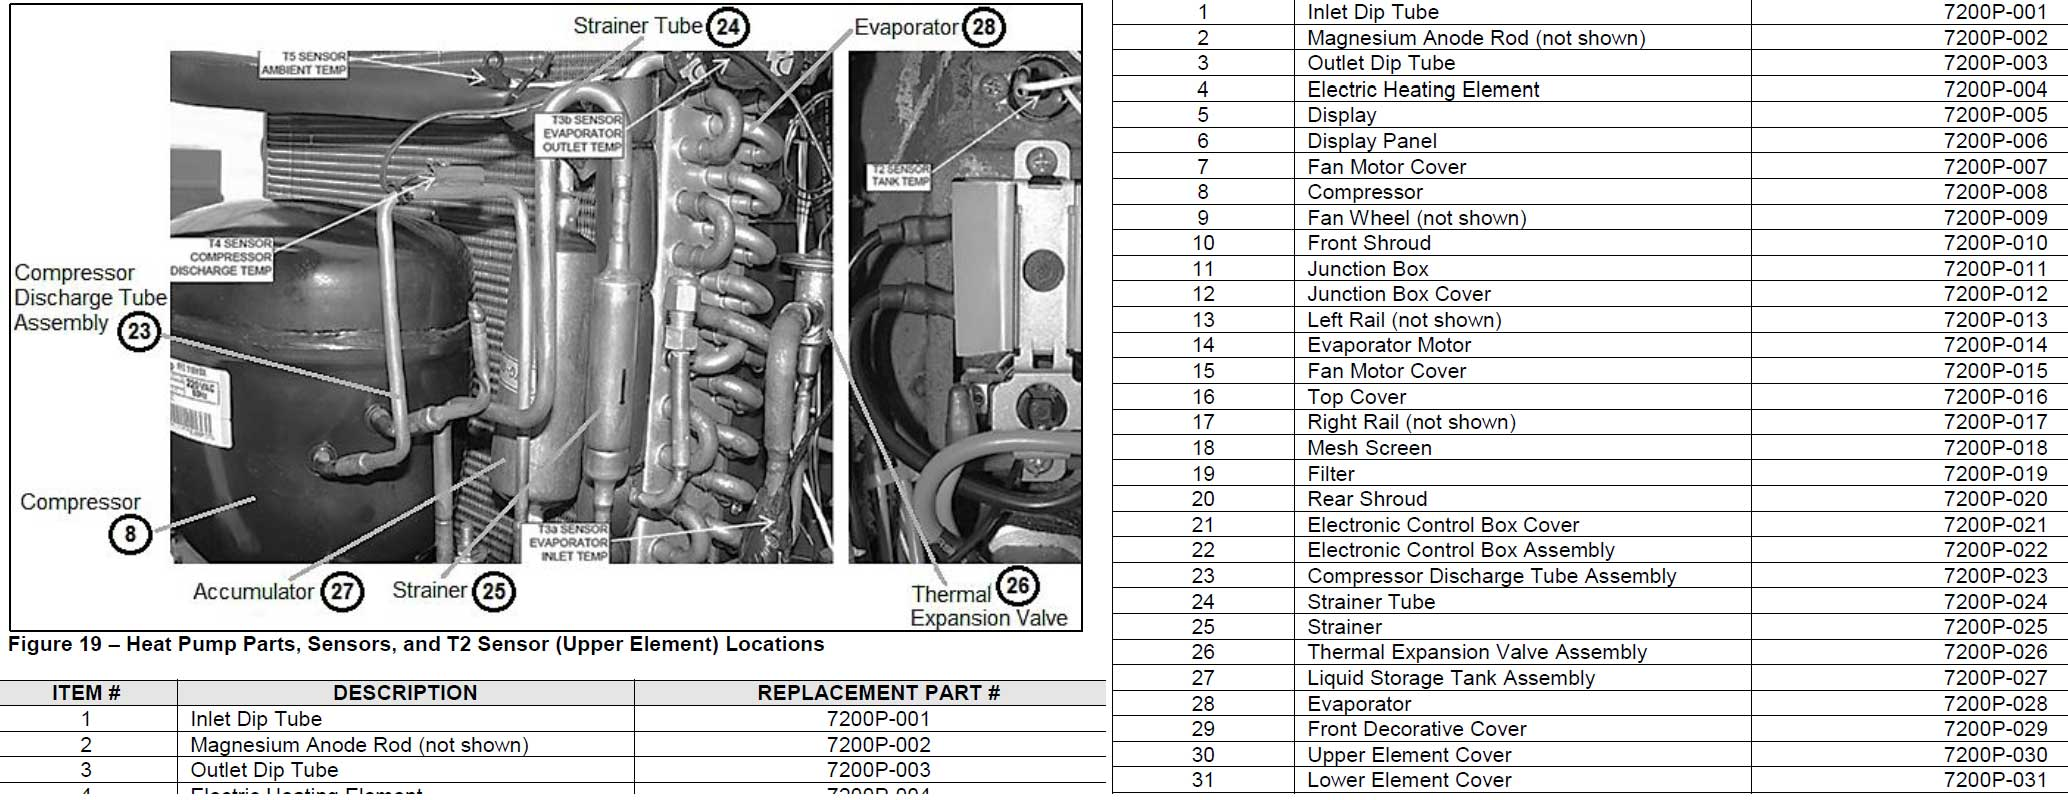 HTP parts wiring diagram for rheem heat pump readingrat net Rheem Manuals Wiring Diagrams at webbmarketing.co